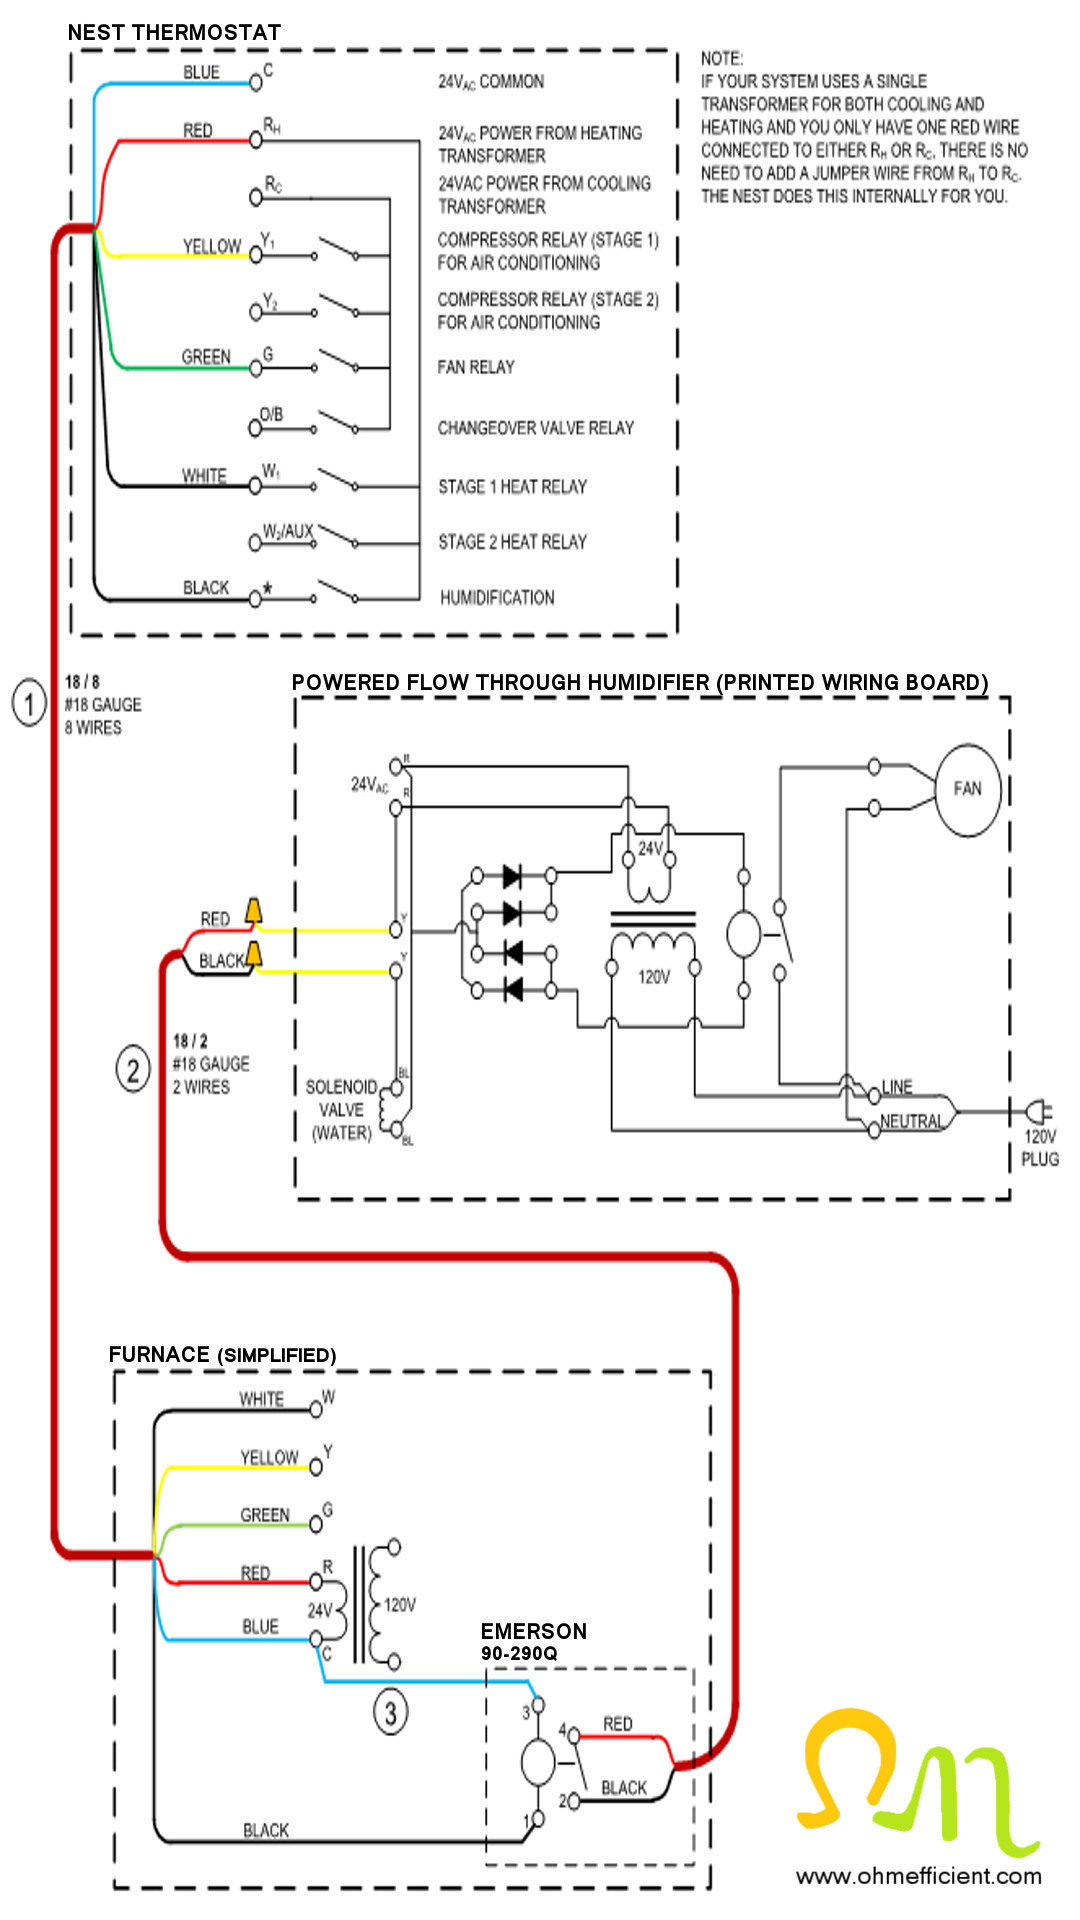 Wiring Diagram For Nest Thermostat With Humidifier - Wiring Diagrams - Goodman Nest Thermostat Wiring Diagram